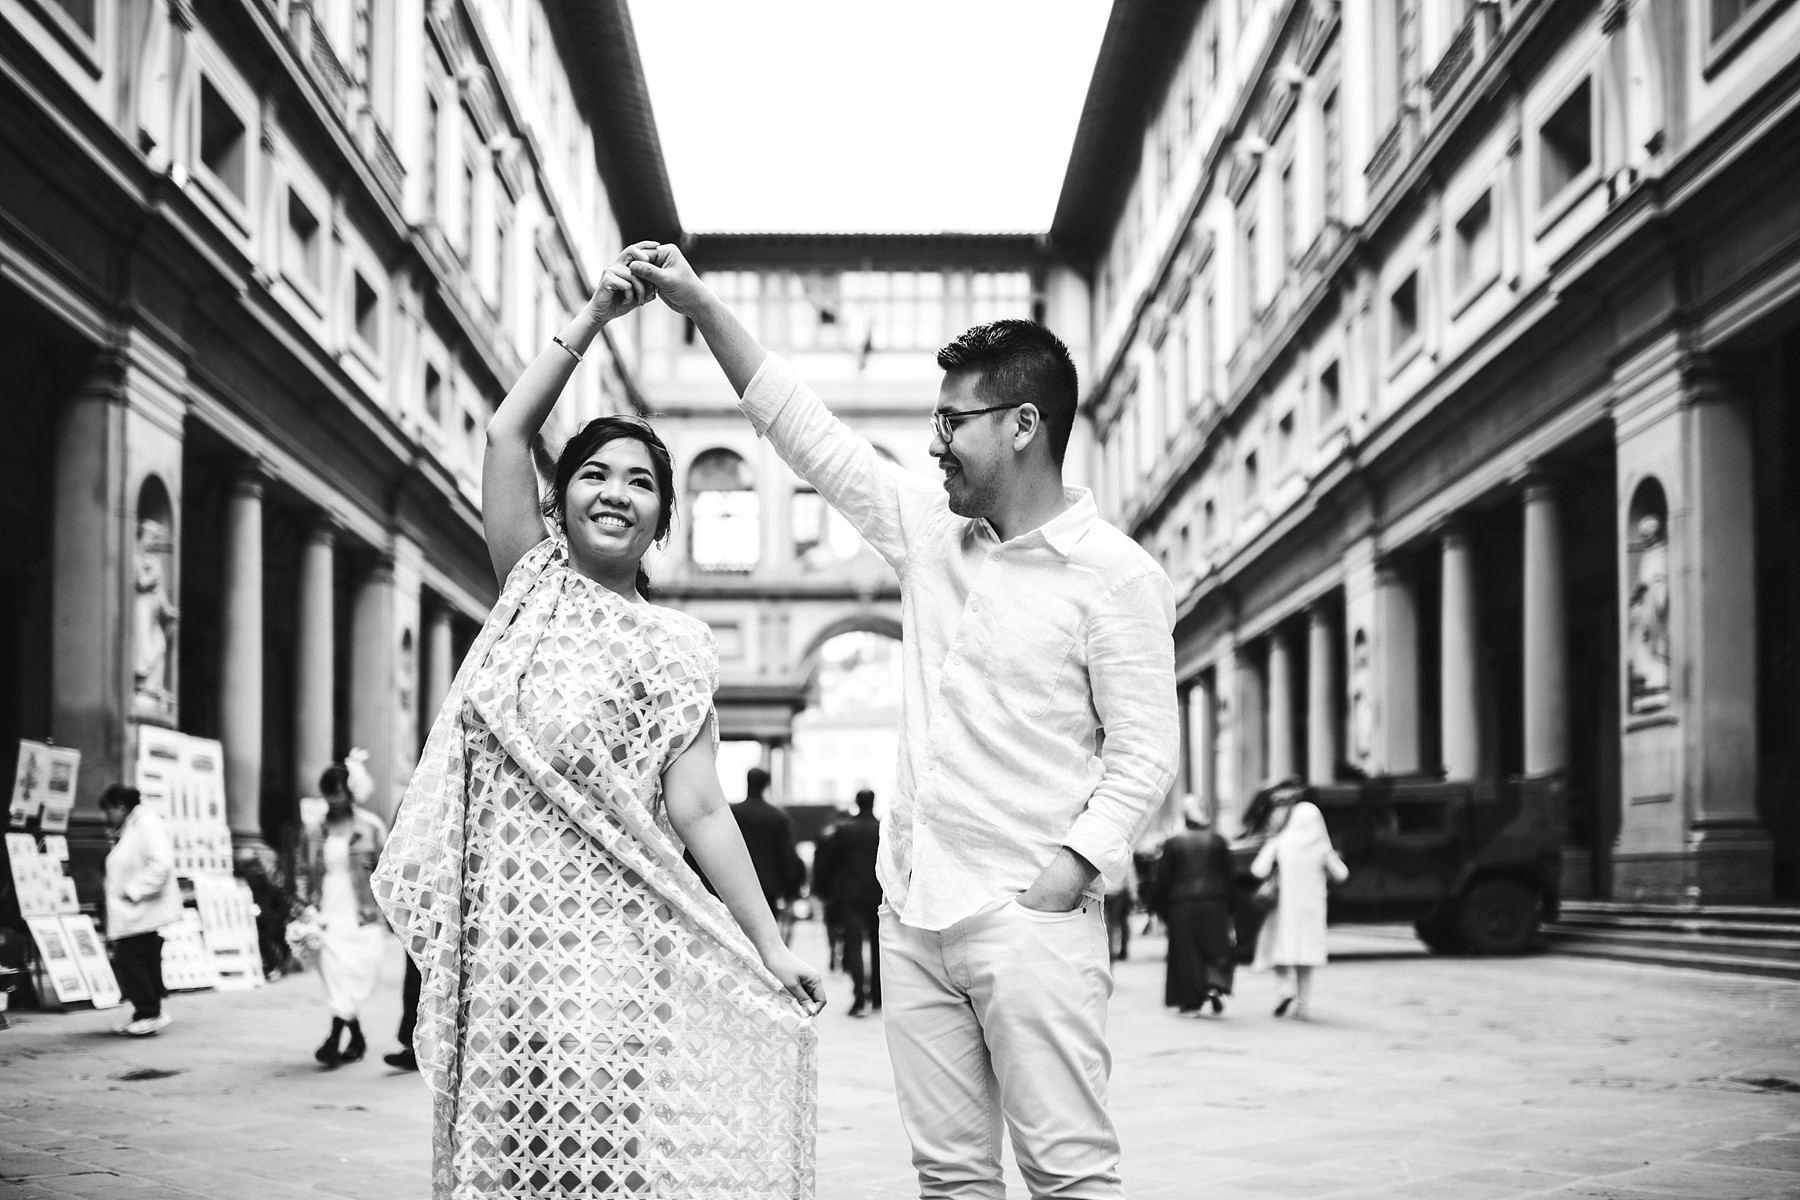 Charming Florence Uffizi couple portrait walk tour photo shoot. Pre wedding photo session near Palazzo Vecchio and Old Bridge